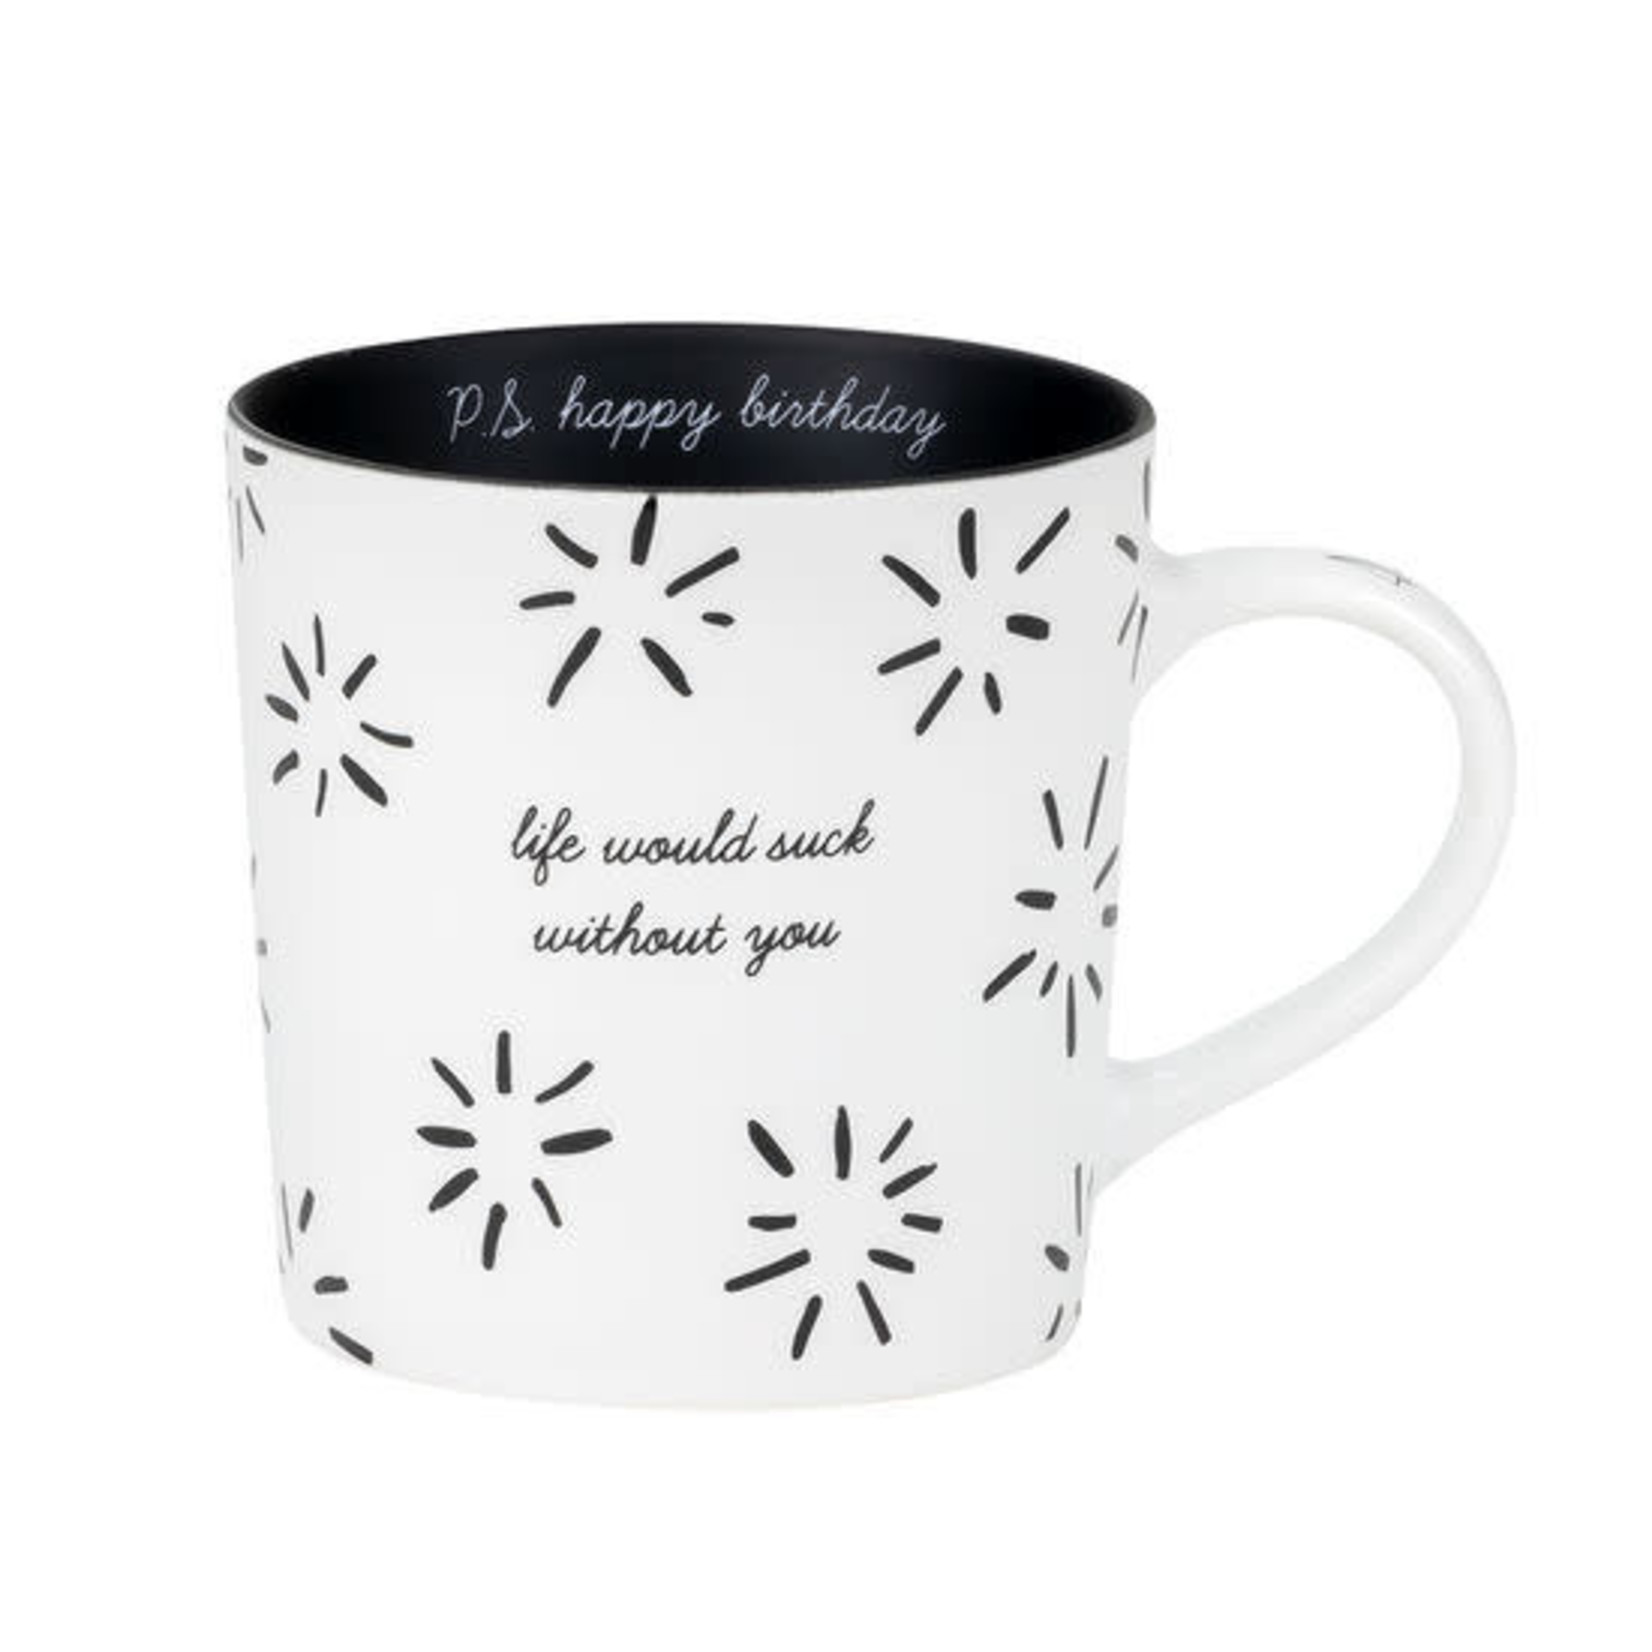 About Face Designs, Inc Mug: Life Would Suck